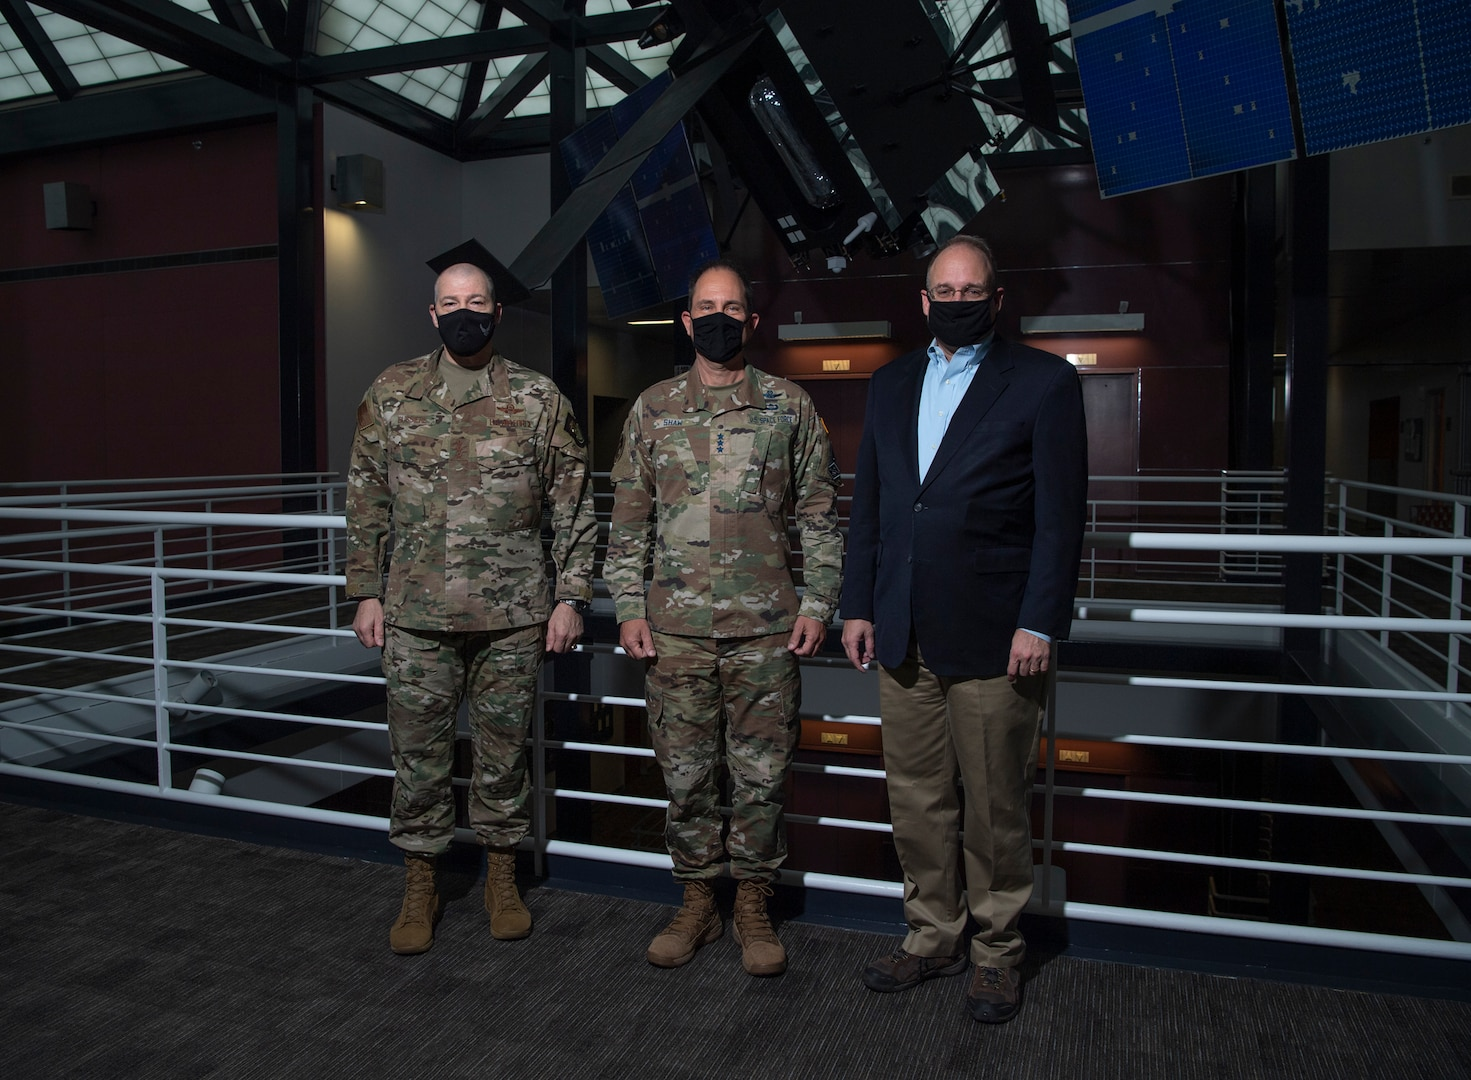 From left to right, Lt. Gen. Thomas Bussiere, United States Strategic Command deputy commander; Lt. Gen. John Shaw, United States Space Command deputy commander; and Ambassador Marshall S. Billingslea, Special Presidential Envoy for Arms Control, pose for a photo Dec. 15, 2020, at USSPACECOM headquarters at Peterson Air Force Base, Colorado.